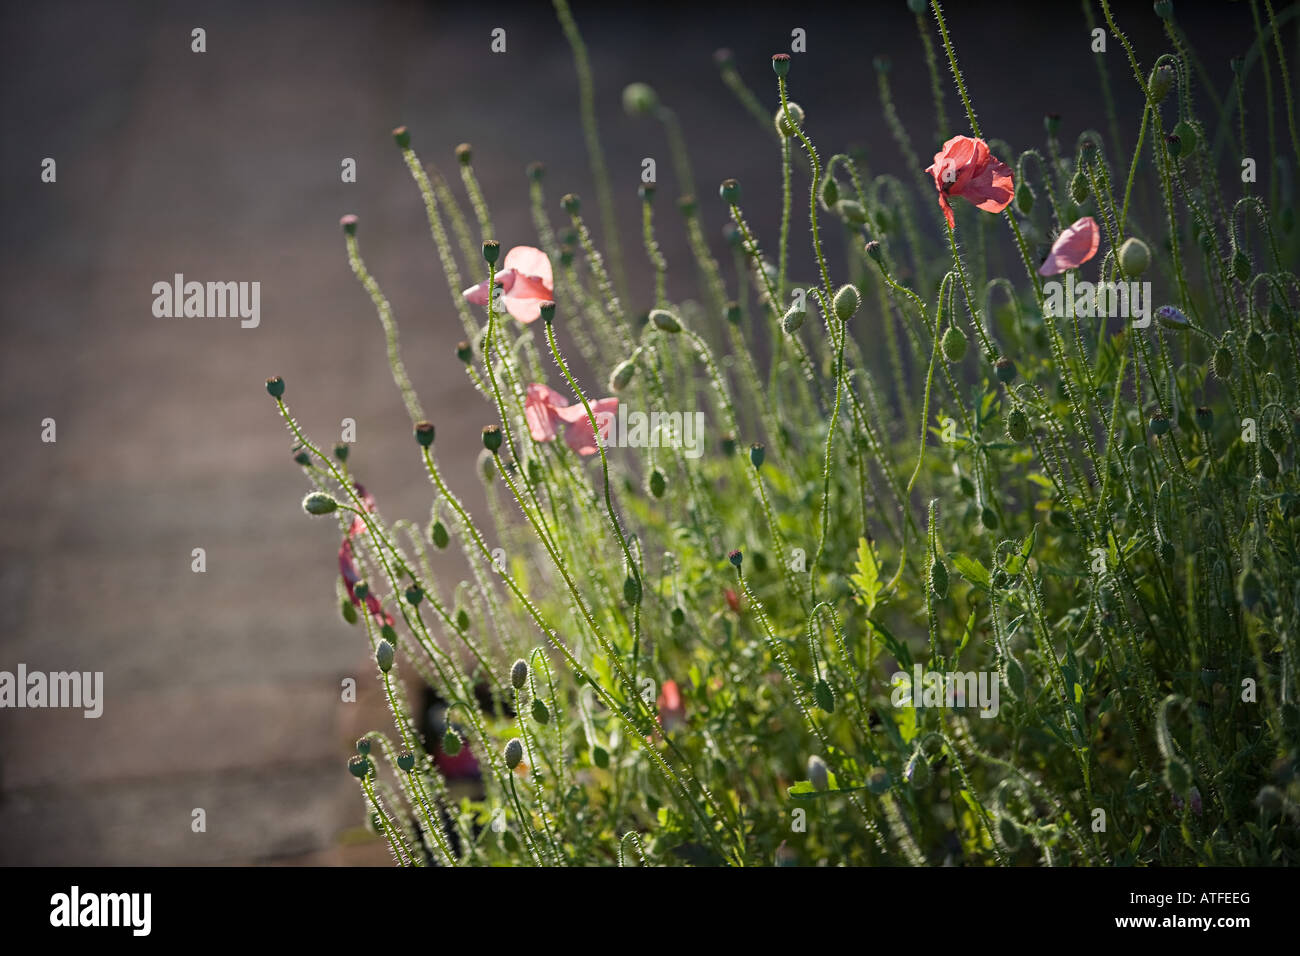 Poppies budding - Stock Image